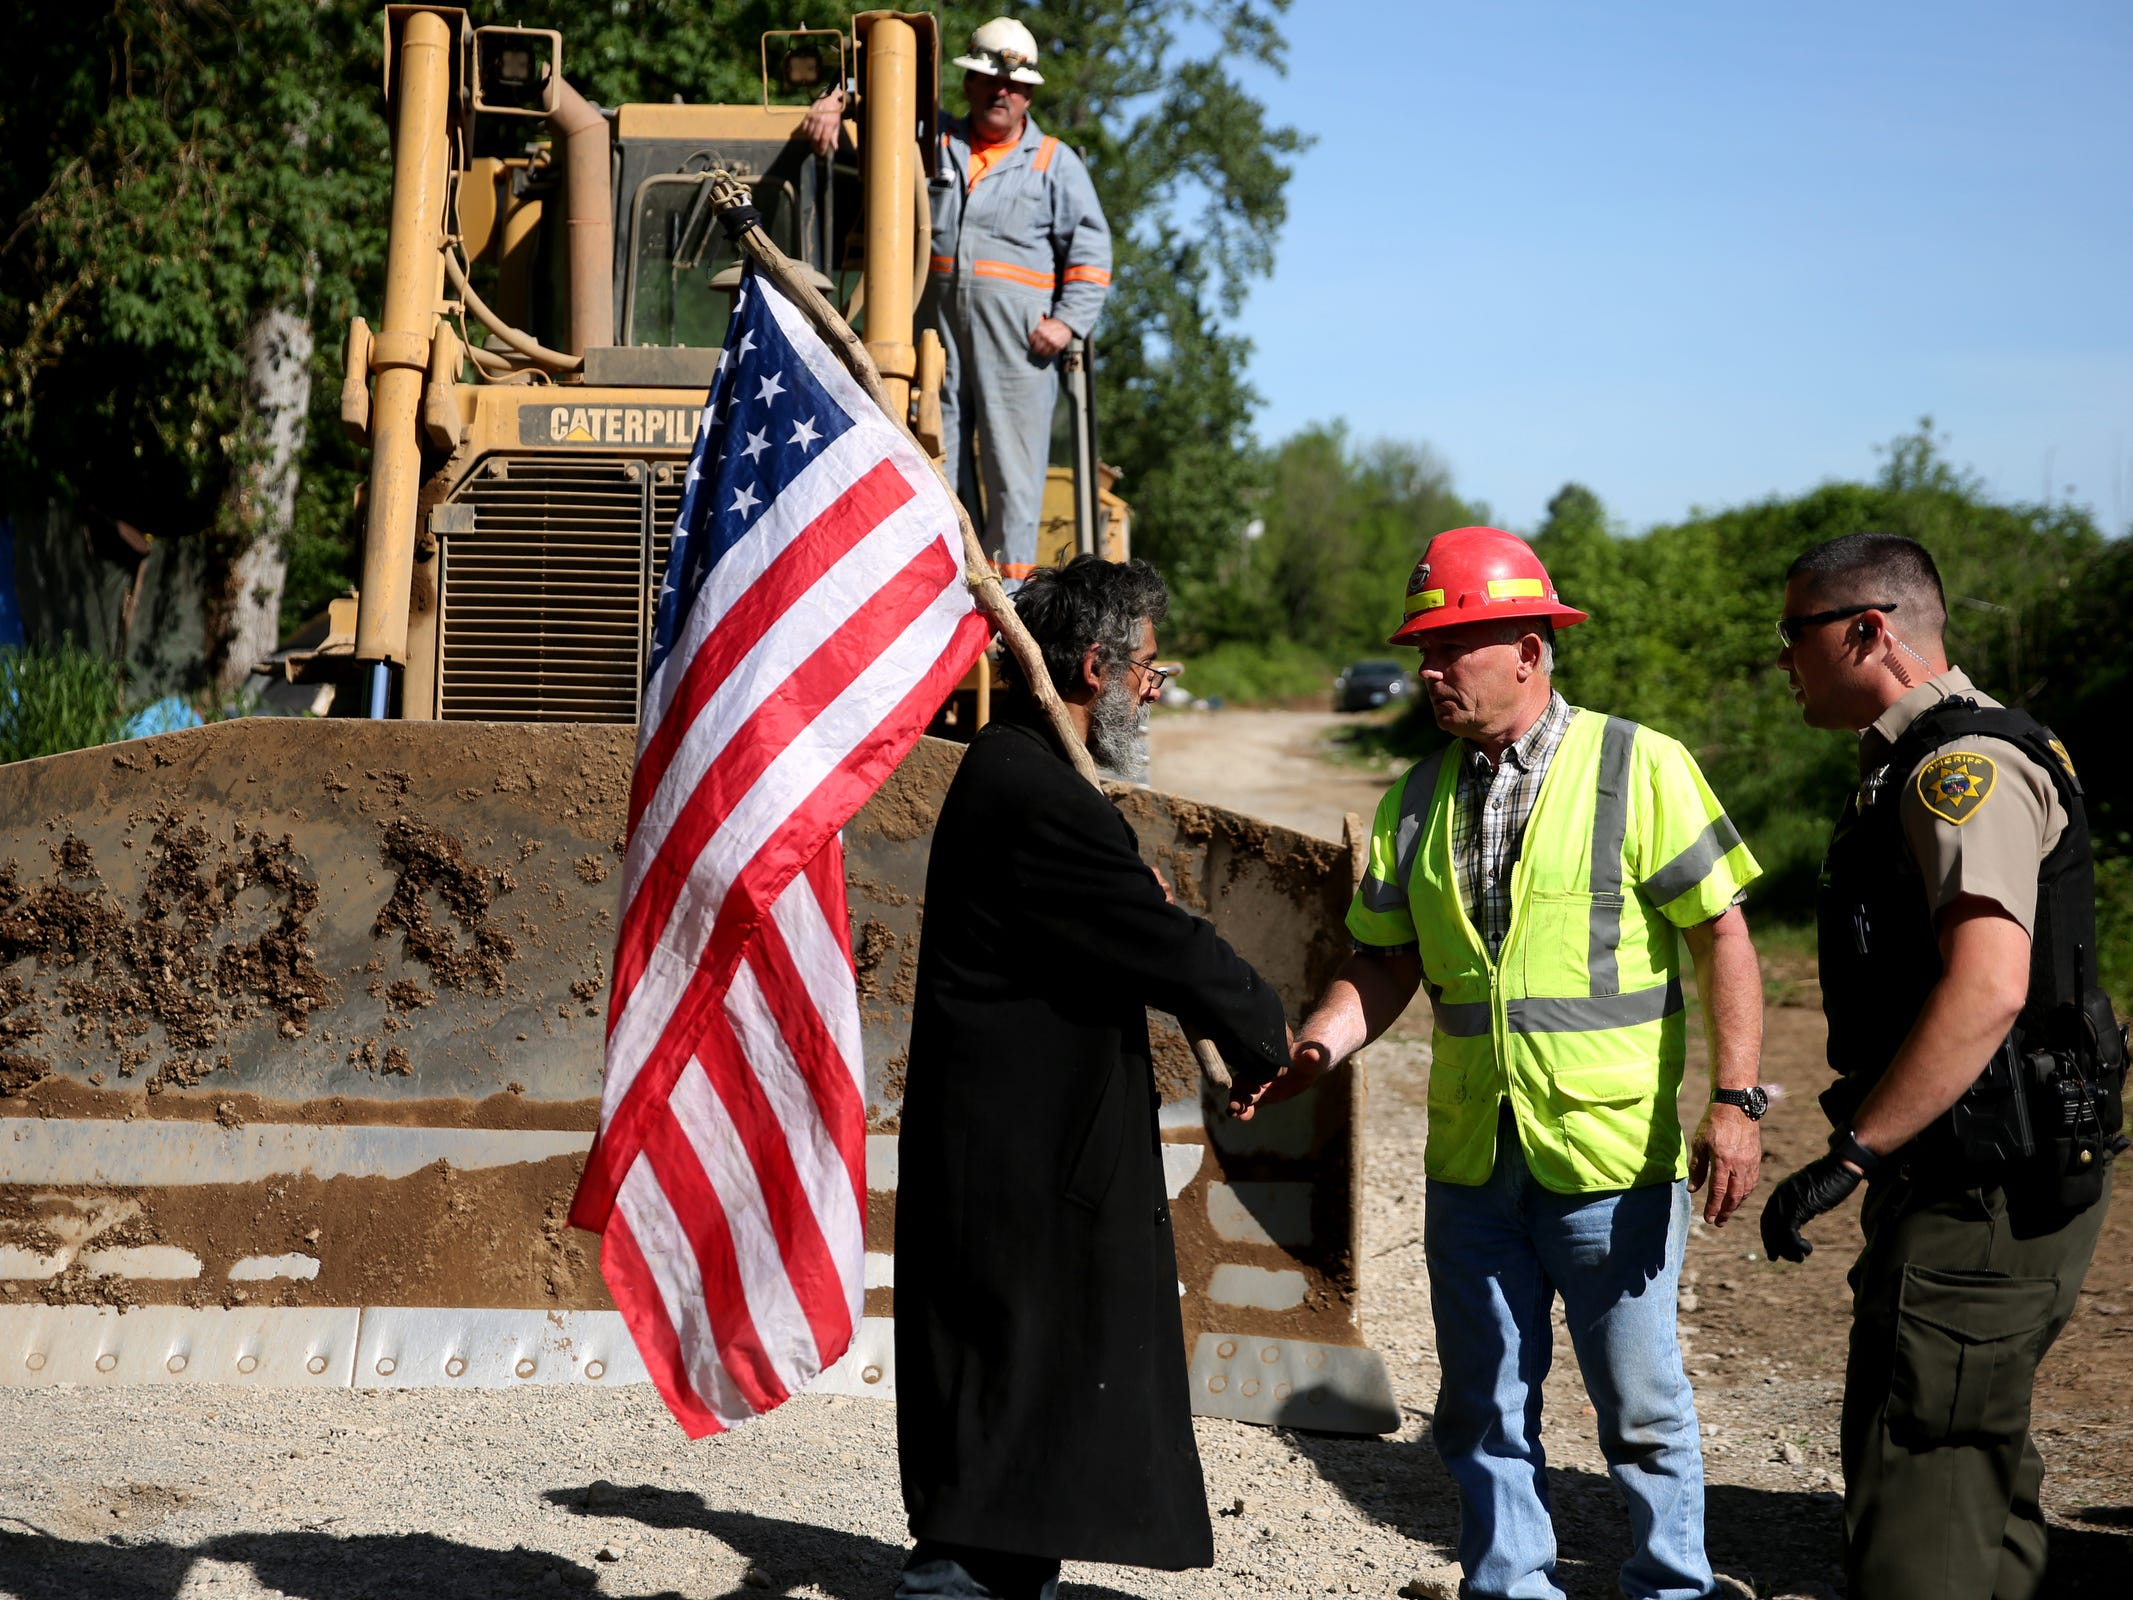 A man living at the homeless camp and a rock quarry employee shake hands after tensions were calmed after several people stood in front of a bulldozer came into a privately-owned rock quarry with a homeless camp near Wallace Marine Park in West Salem on May 7, 2019. Signs were posted throughout the camp recently stating personal property must be removed or it will be taken by the landowner and its designated agent starting May 7. An eviction can't be enforced until a court approves it.